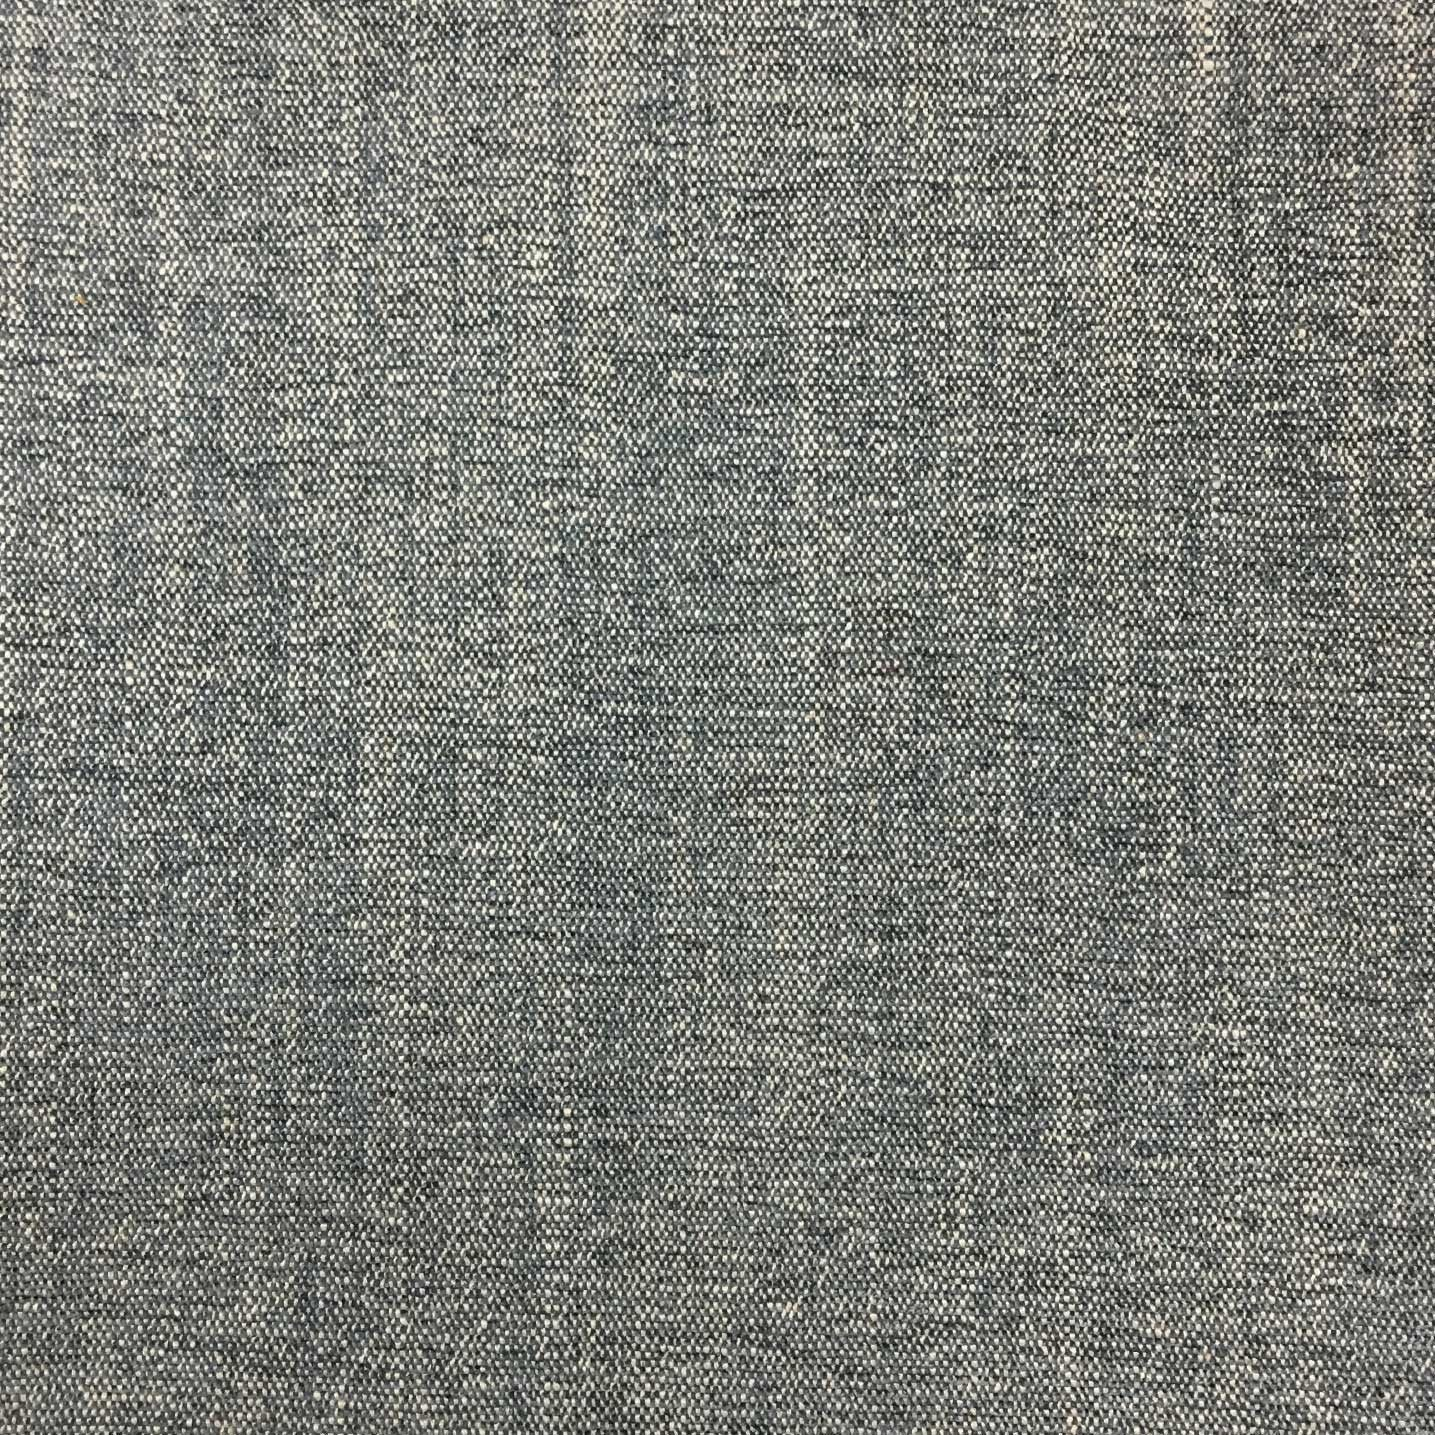 By NEXT Brown Linen Blend Textured Heavy Upholstery Fabric